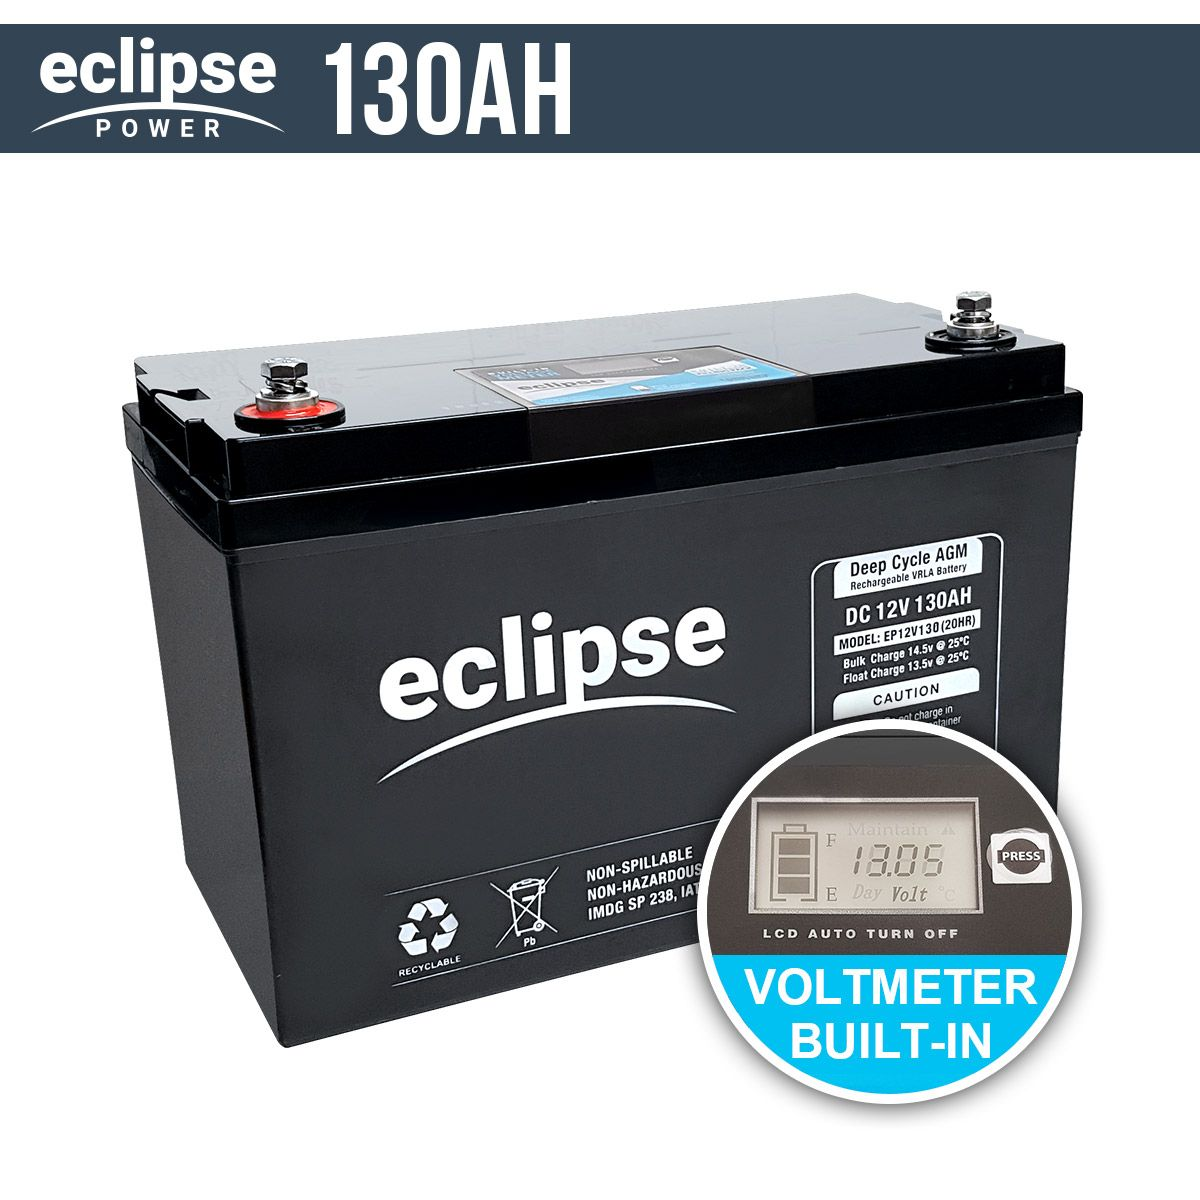 130AH 12V Eclipse AGM Deep Cycle Battery | Bus Home | Lead